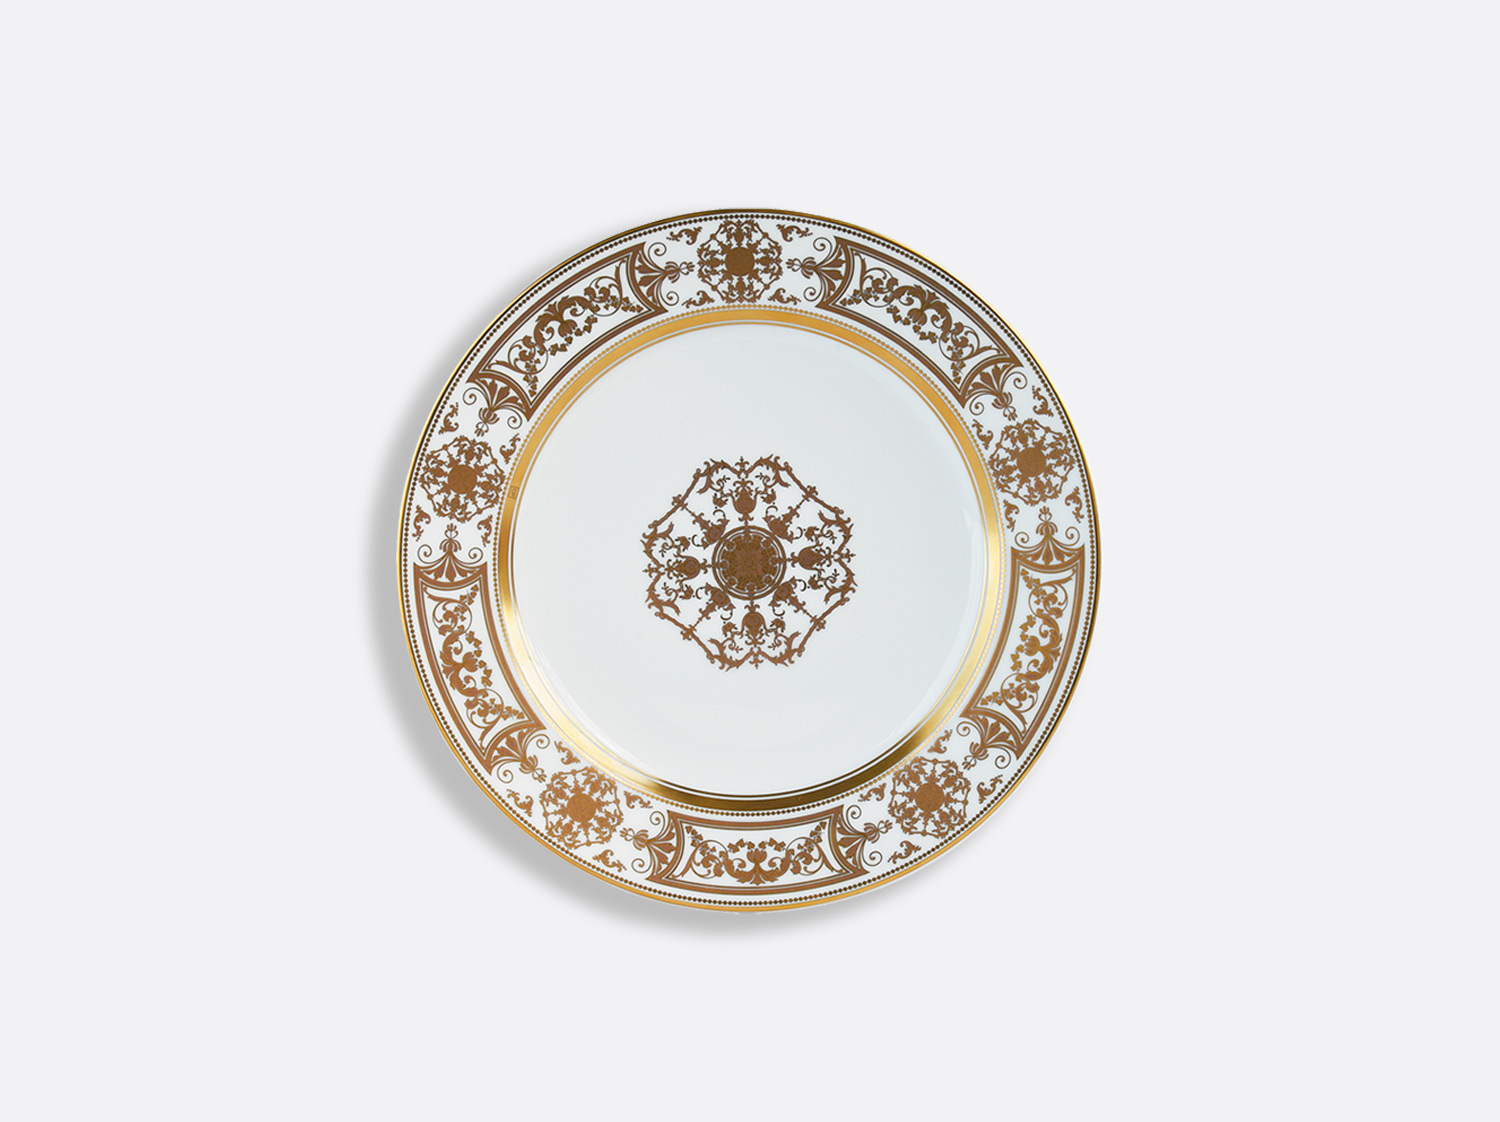 Assiette à dessert 21 cm en porcelaine de la collection Aux Rois Or Bernardaud